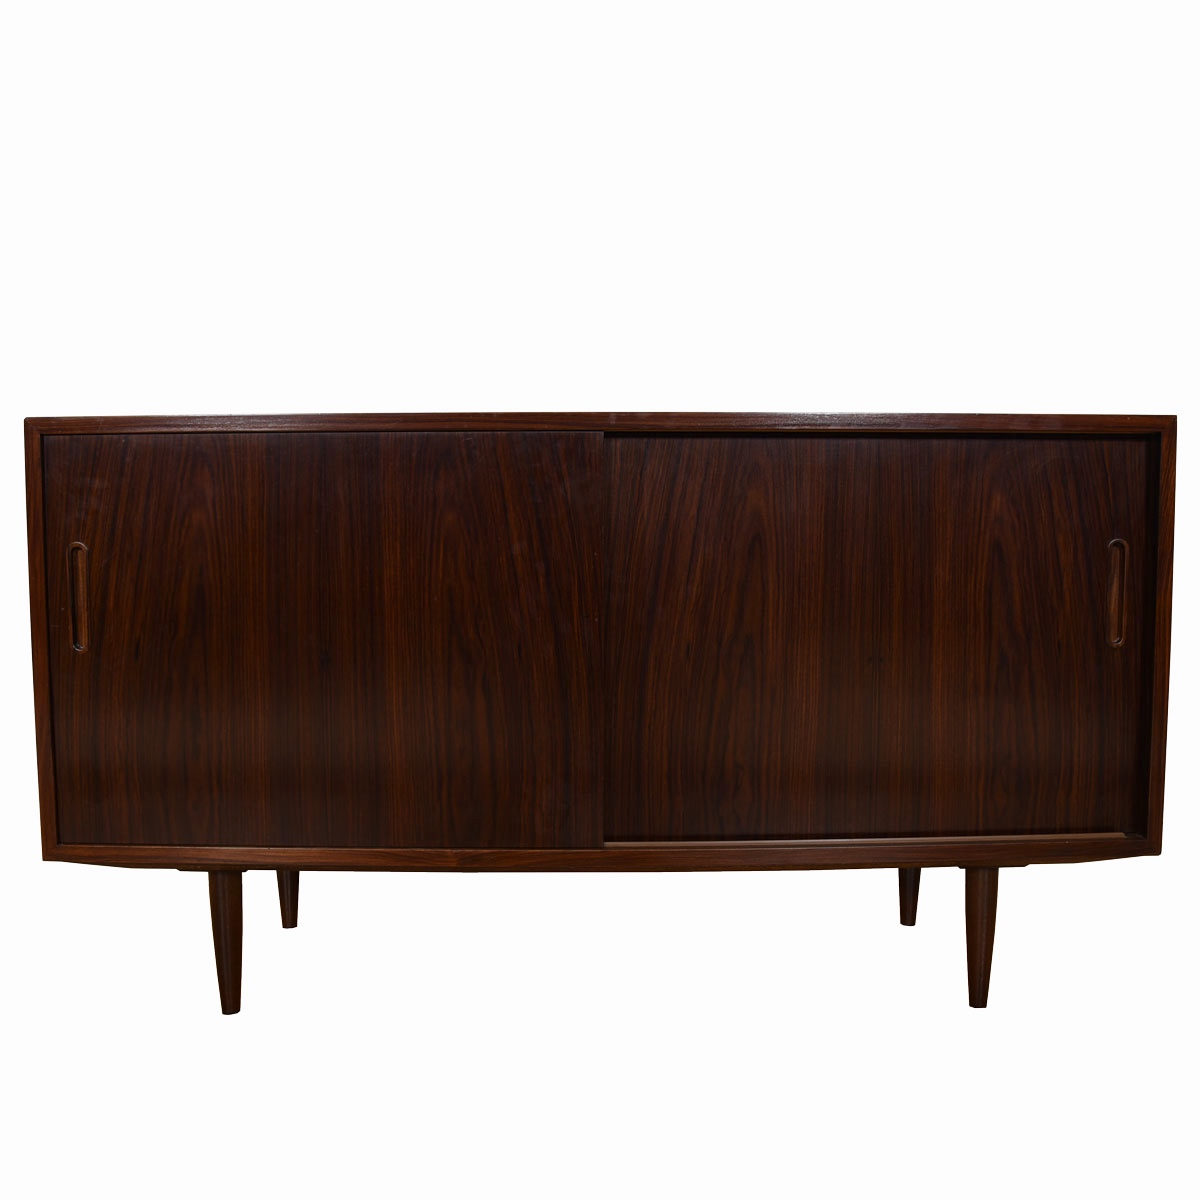 Rosewood Sliding Door Storage Cabinet / Sideboard with File Drawer